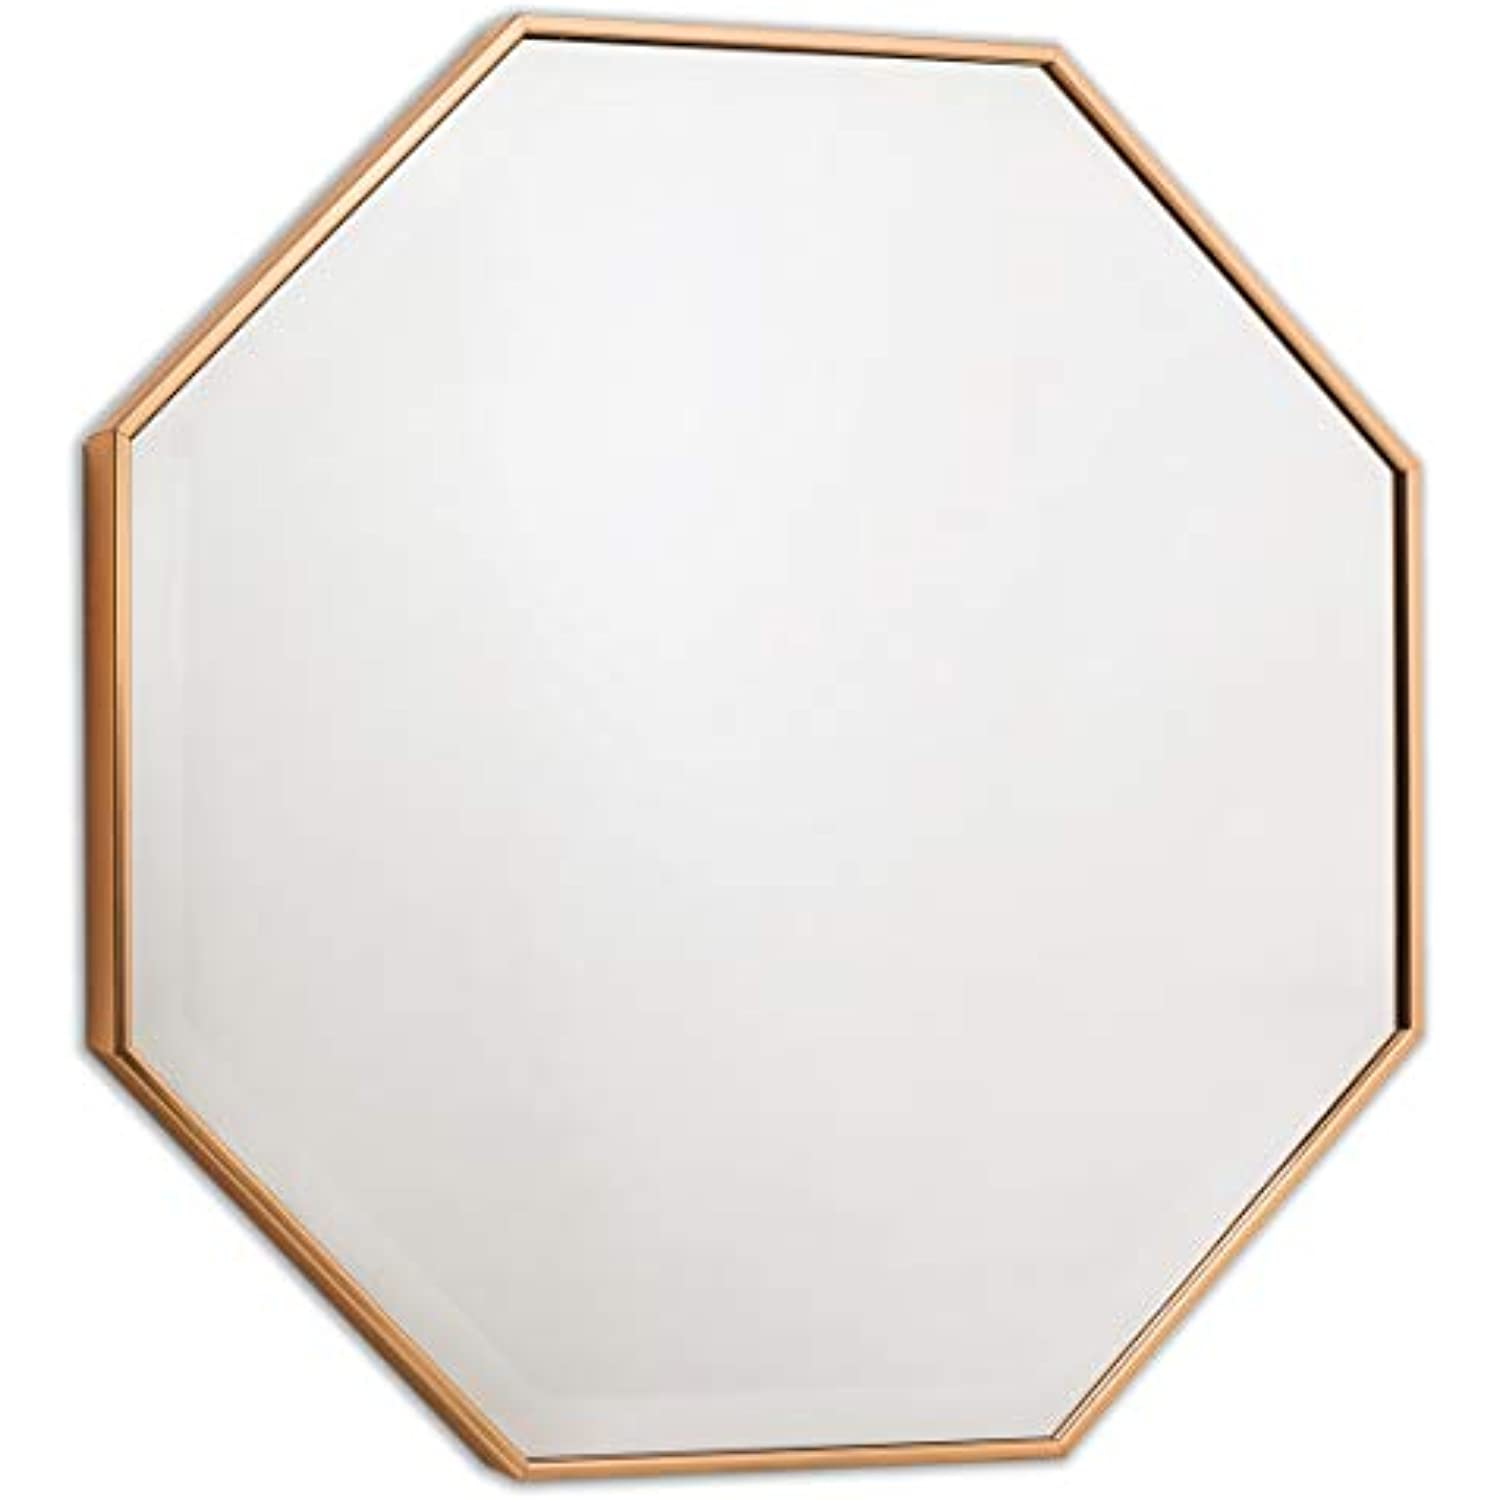 Wall Mirror - Octagon Frame for Entryway or Bathroom, Bronze Mirrors by EcoHome